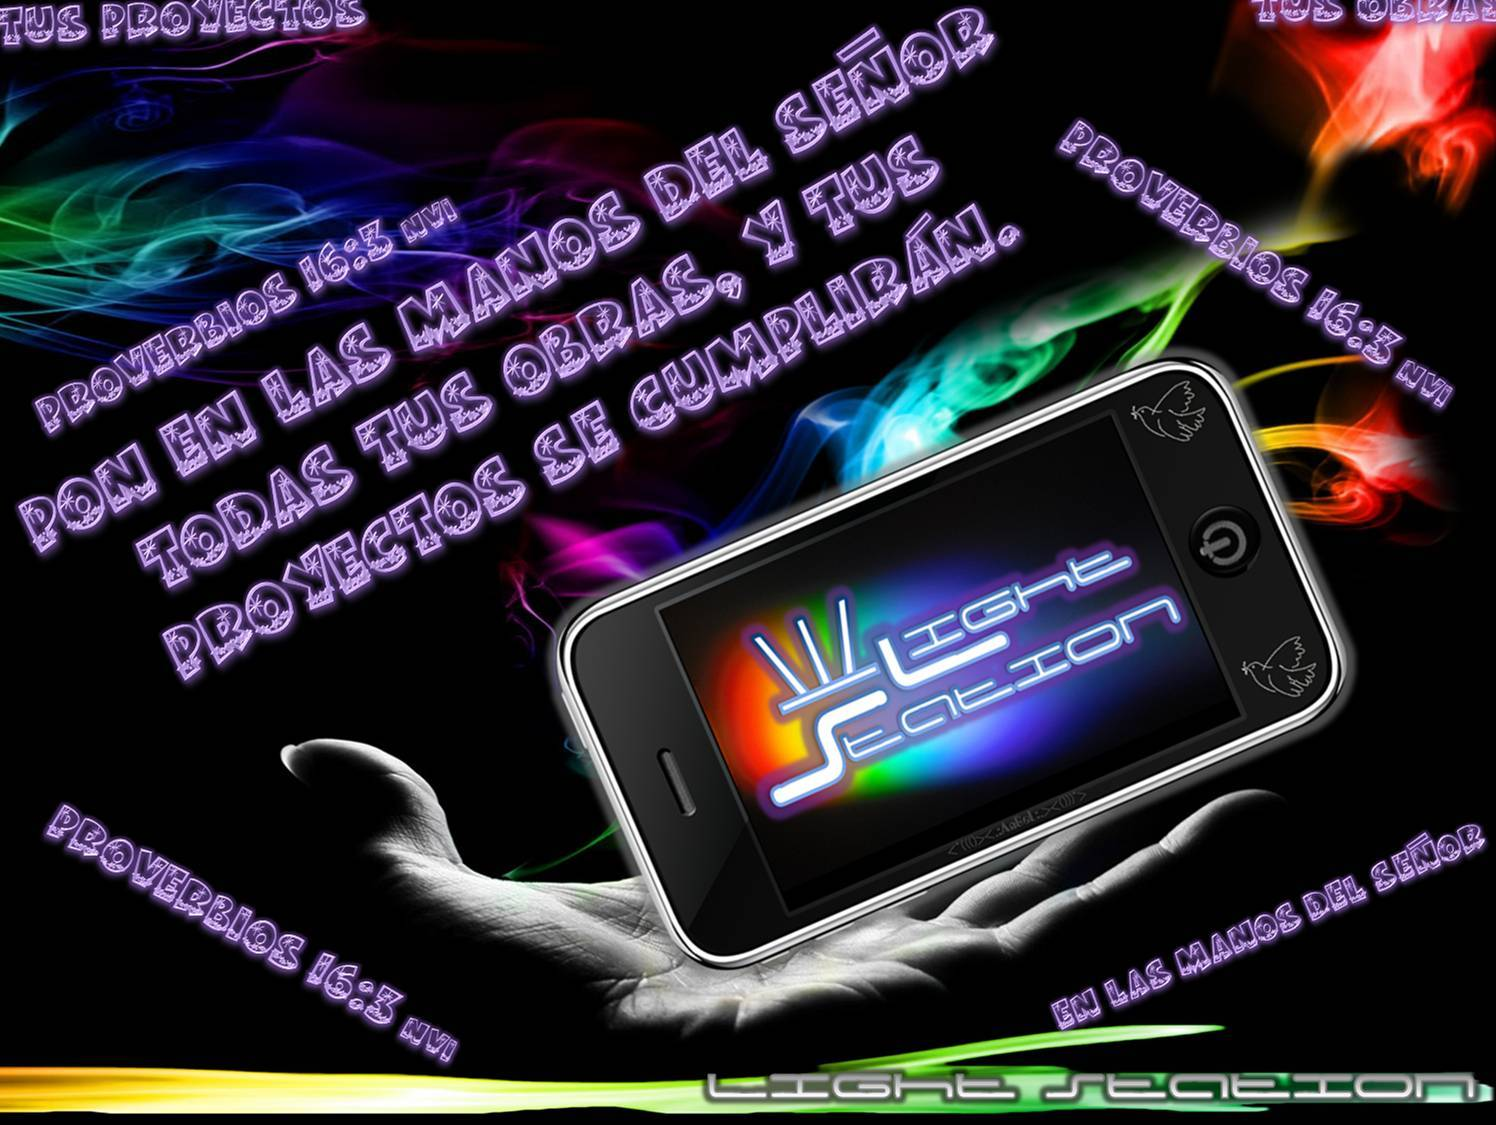 wallpapers cristianos